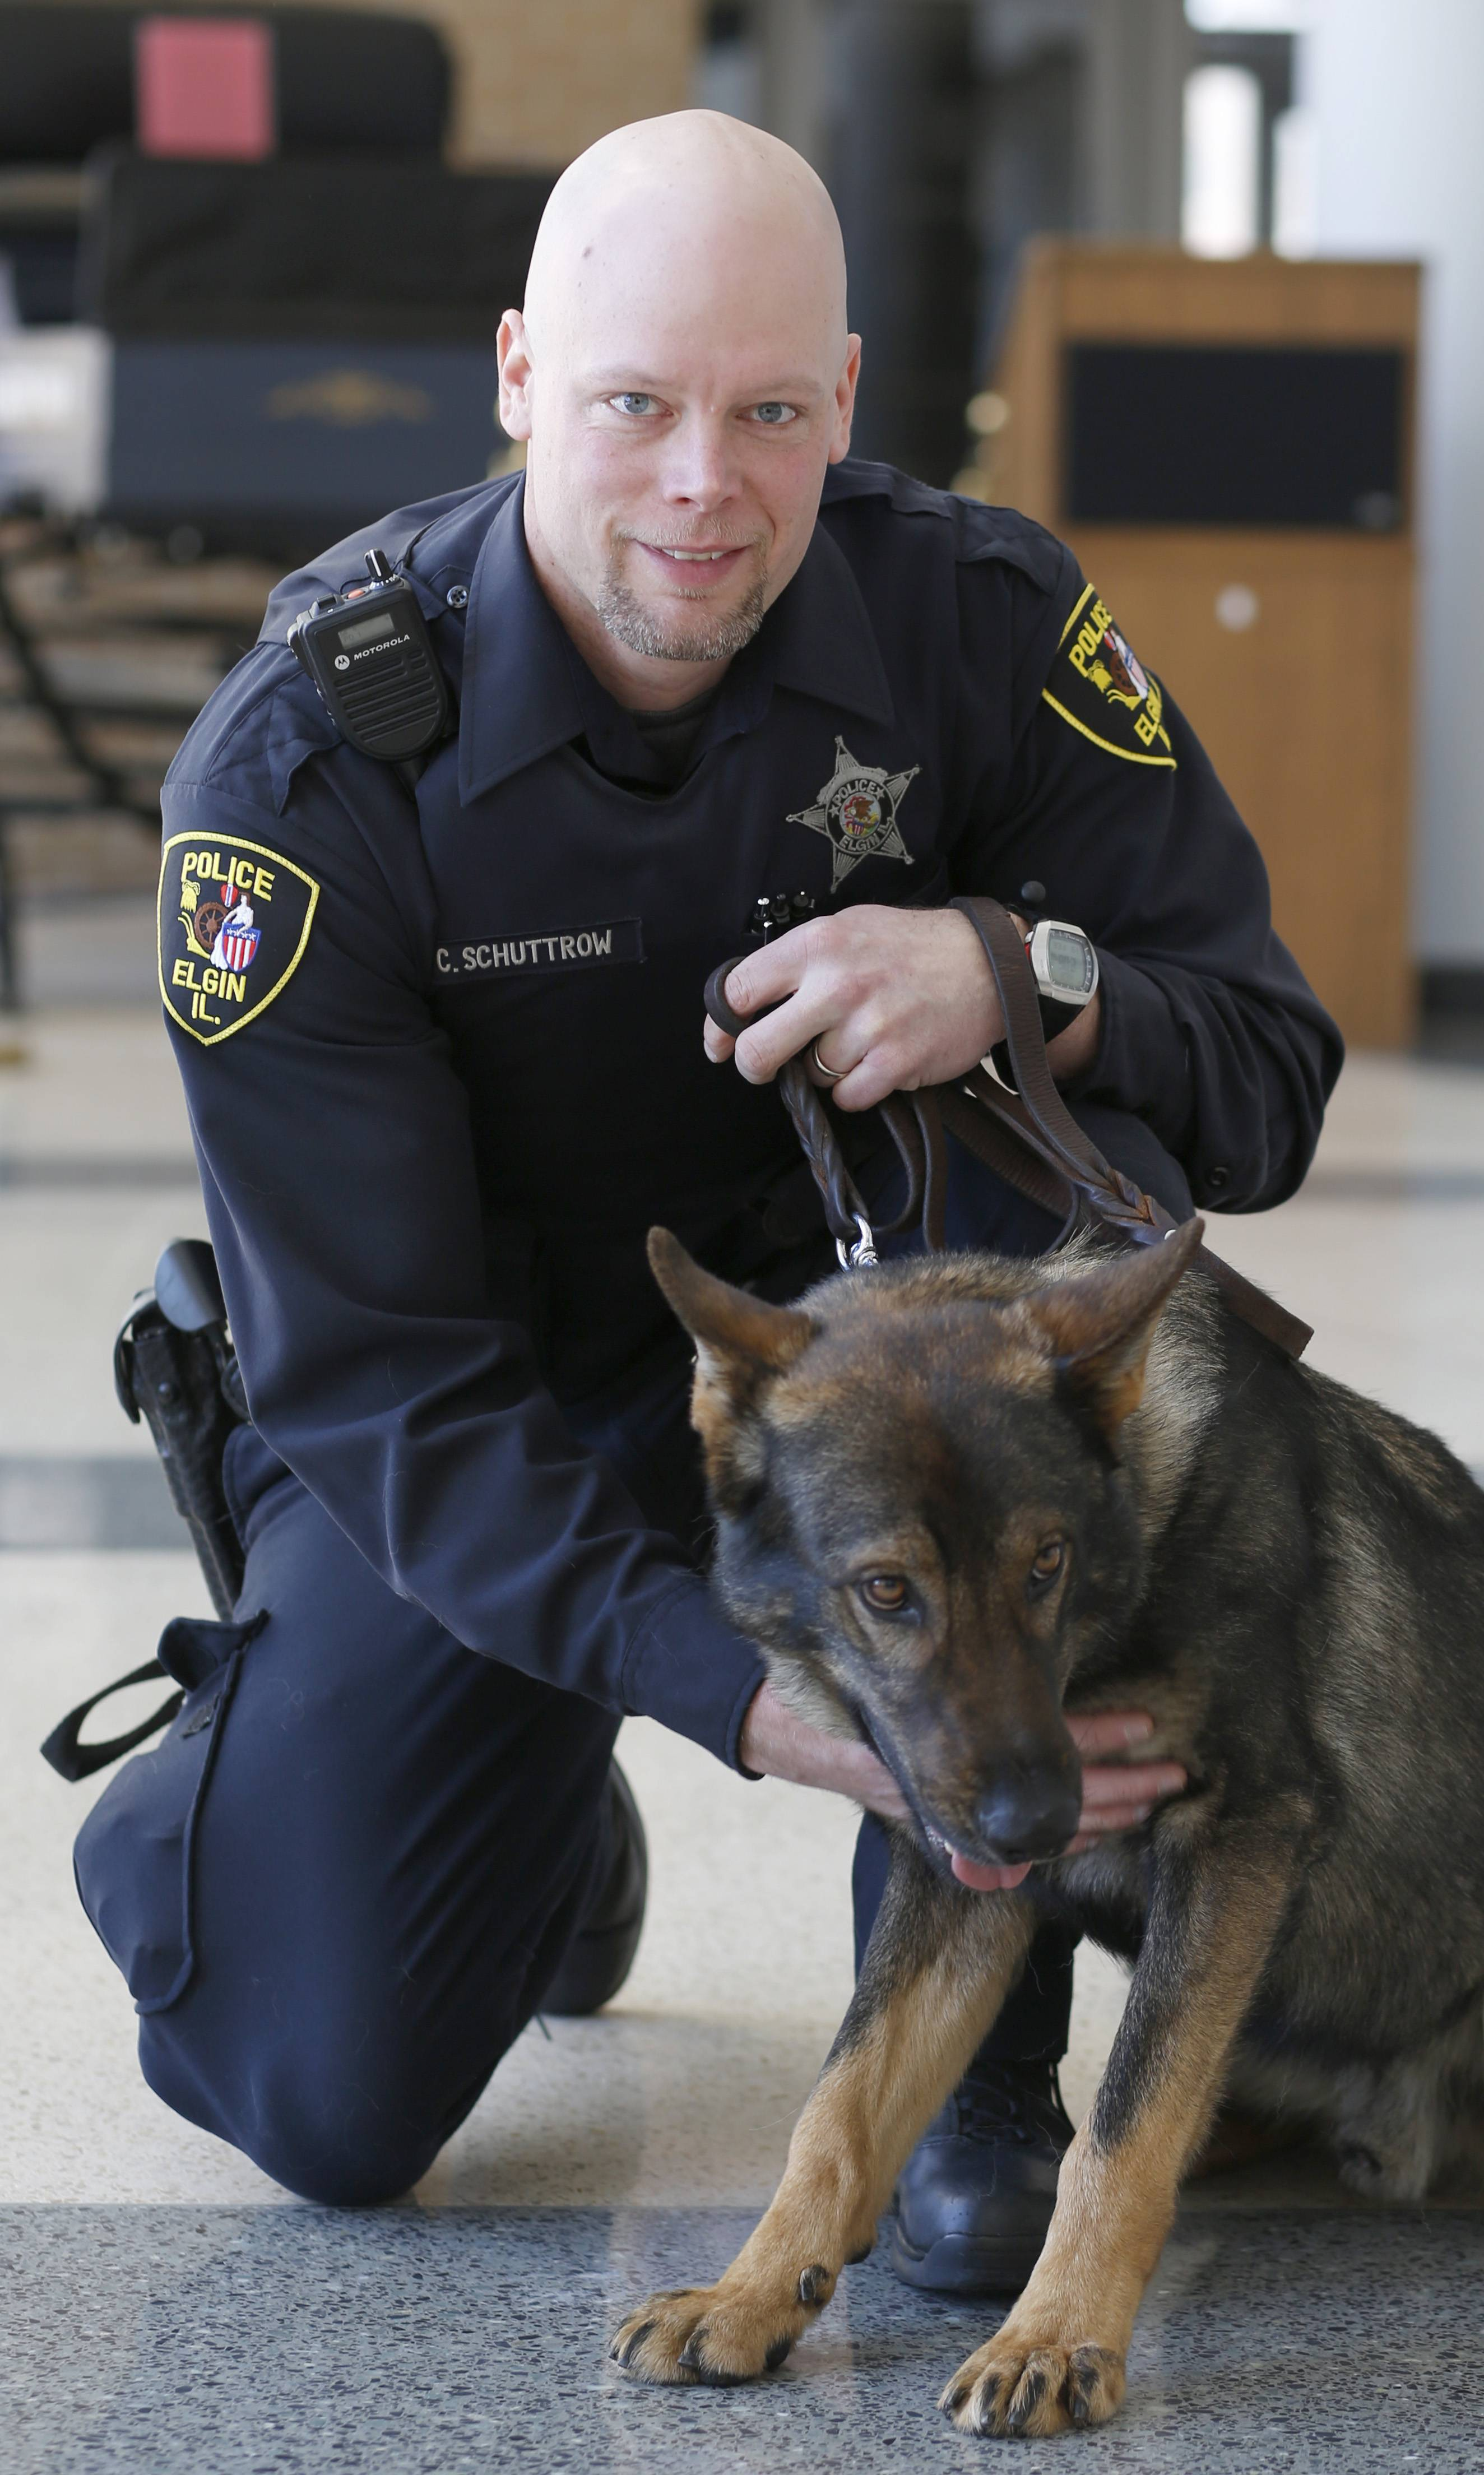 Elgin Police Officer Chad Schuttrow and his police dog, Colt, a German shepherd, have already made several narcotics detections since November.